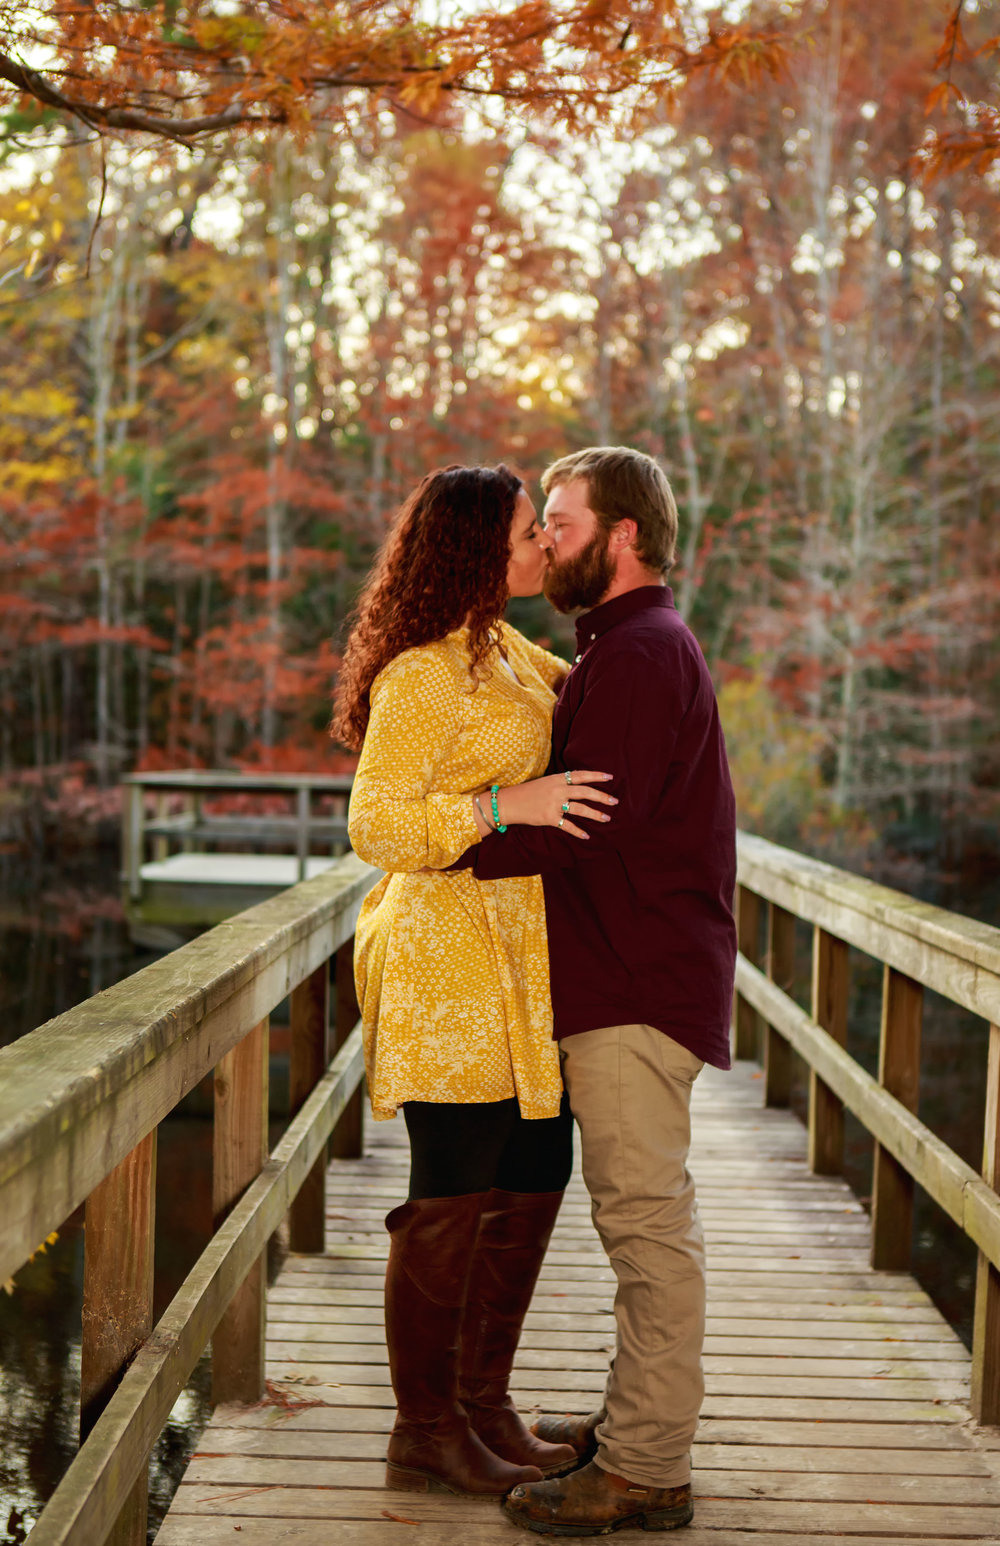 Wilmington_NC_Engagement_Photos_Tiffany_Abruzzo_Photography_1.jpg